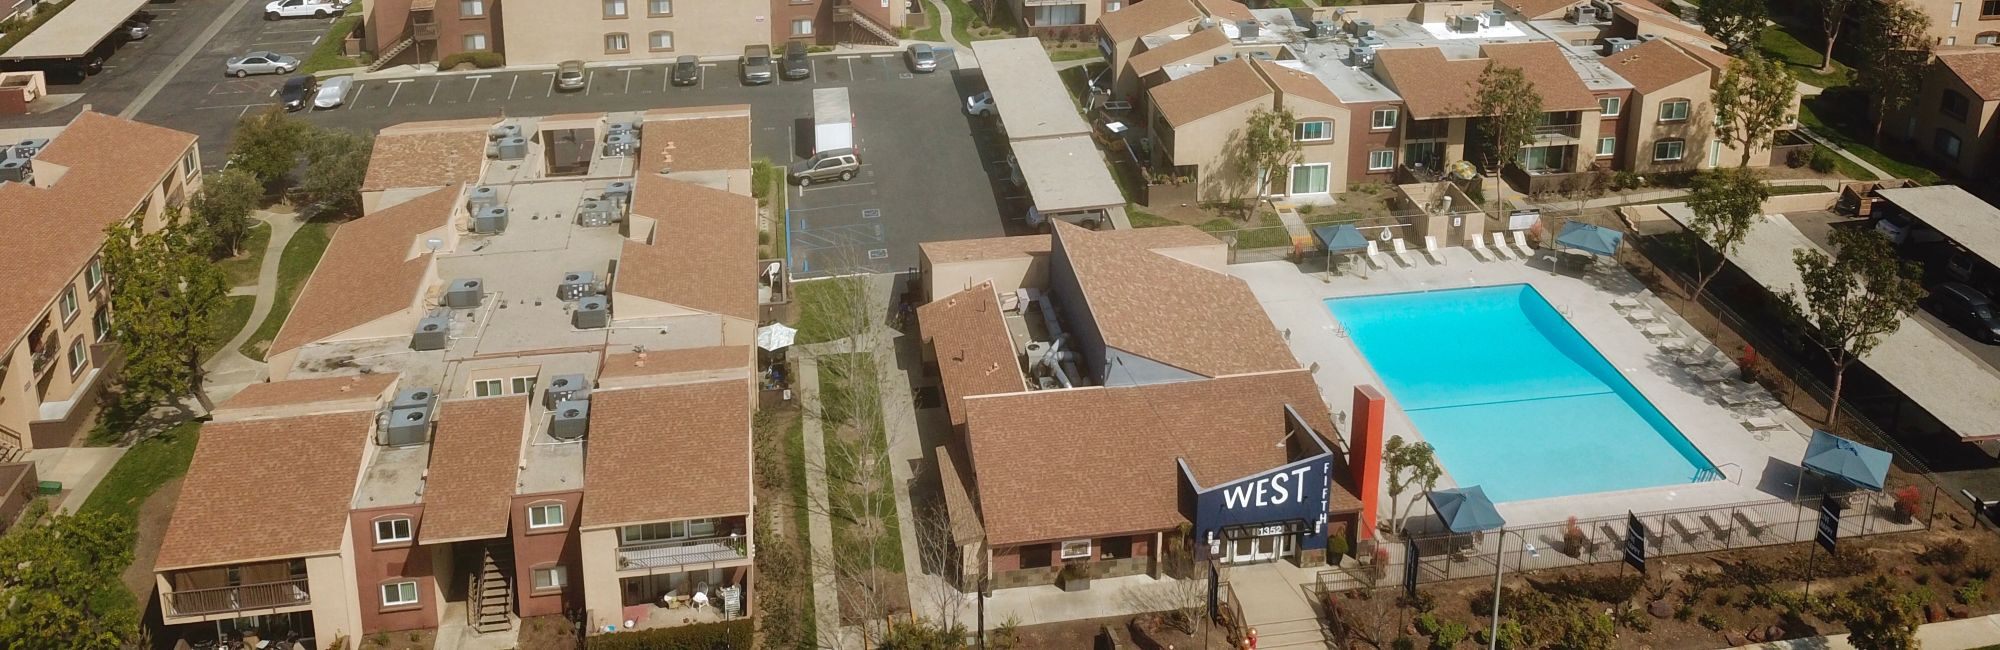 Neighborhood at West Fifth Apartments in Ontario, California